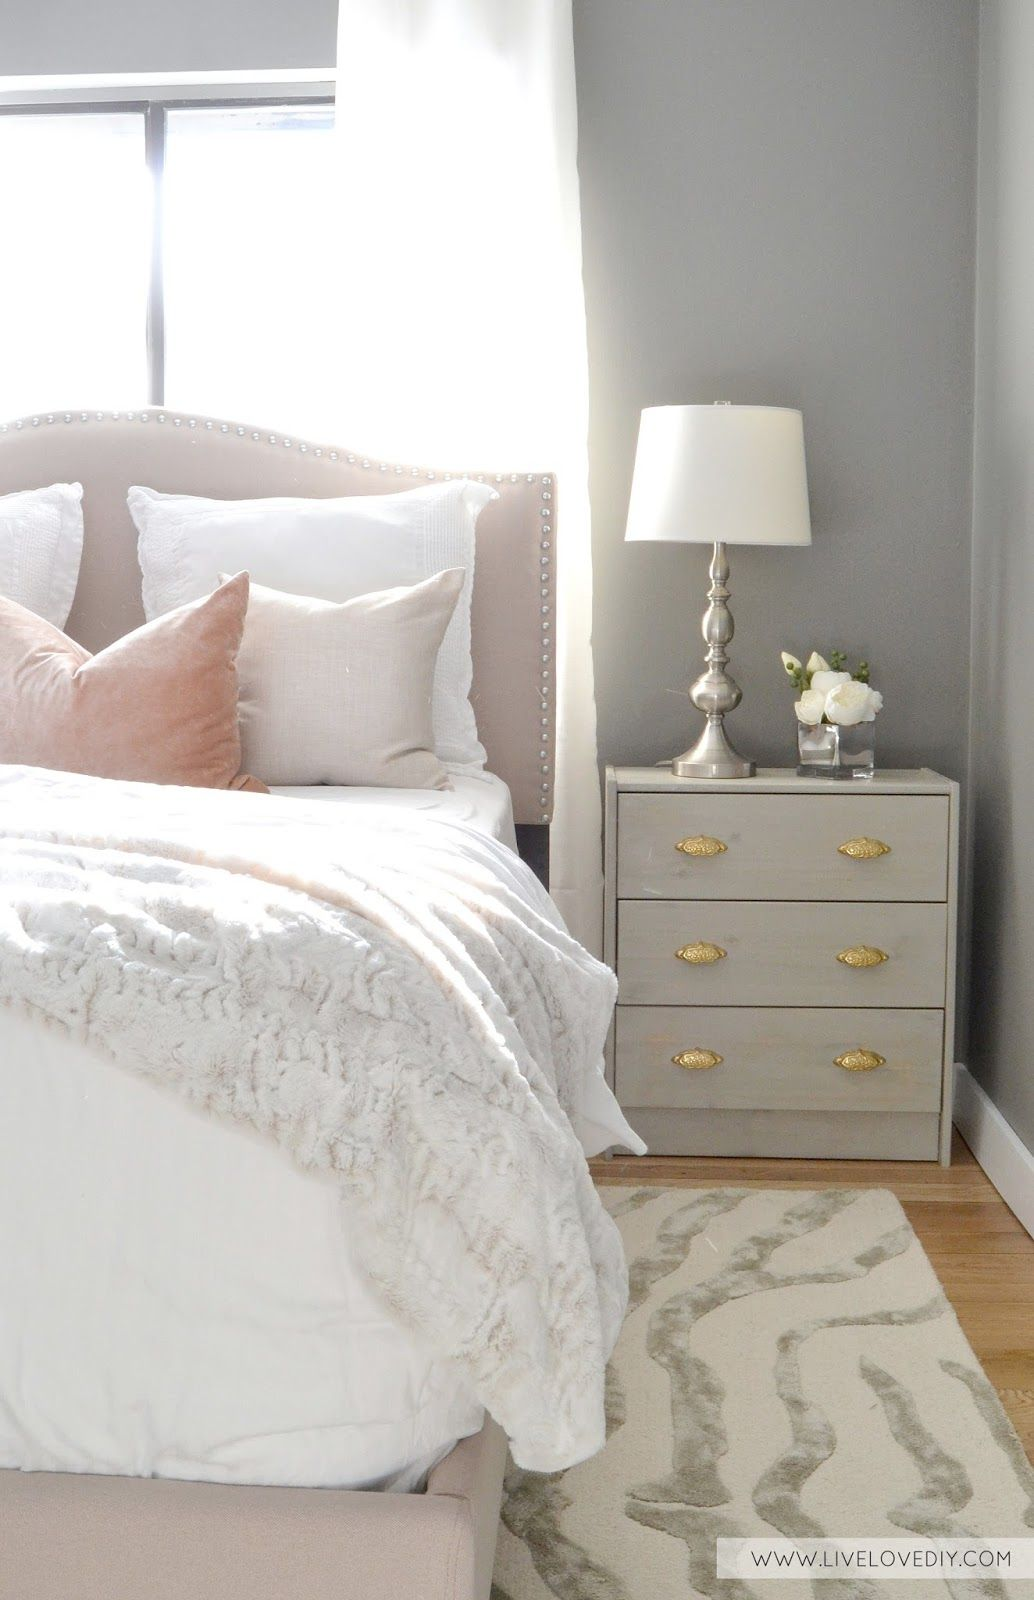 A Domestic Life Home Bedroom Bedroom Makeover Home #pink #grey #and #white #living #room #ideas